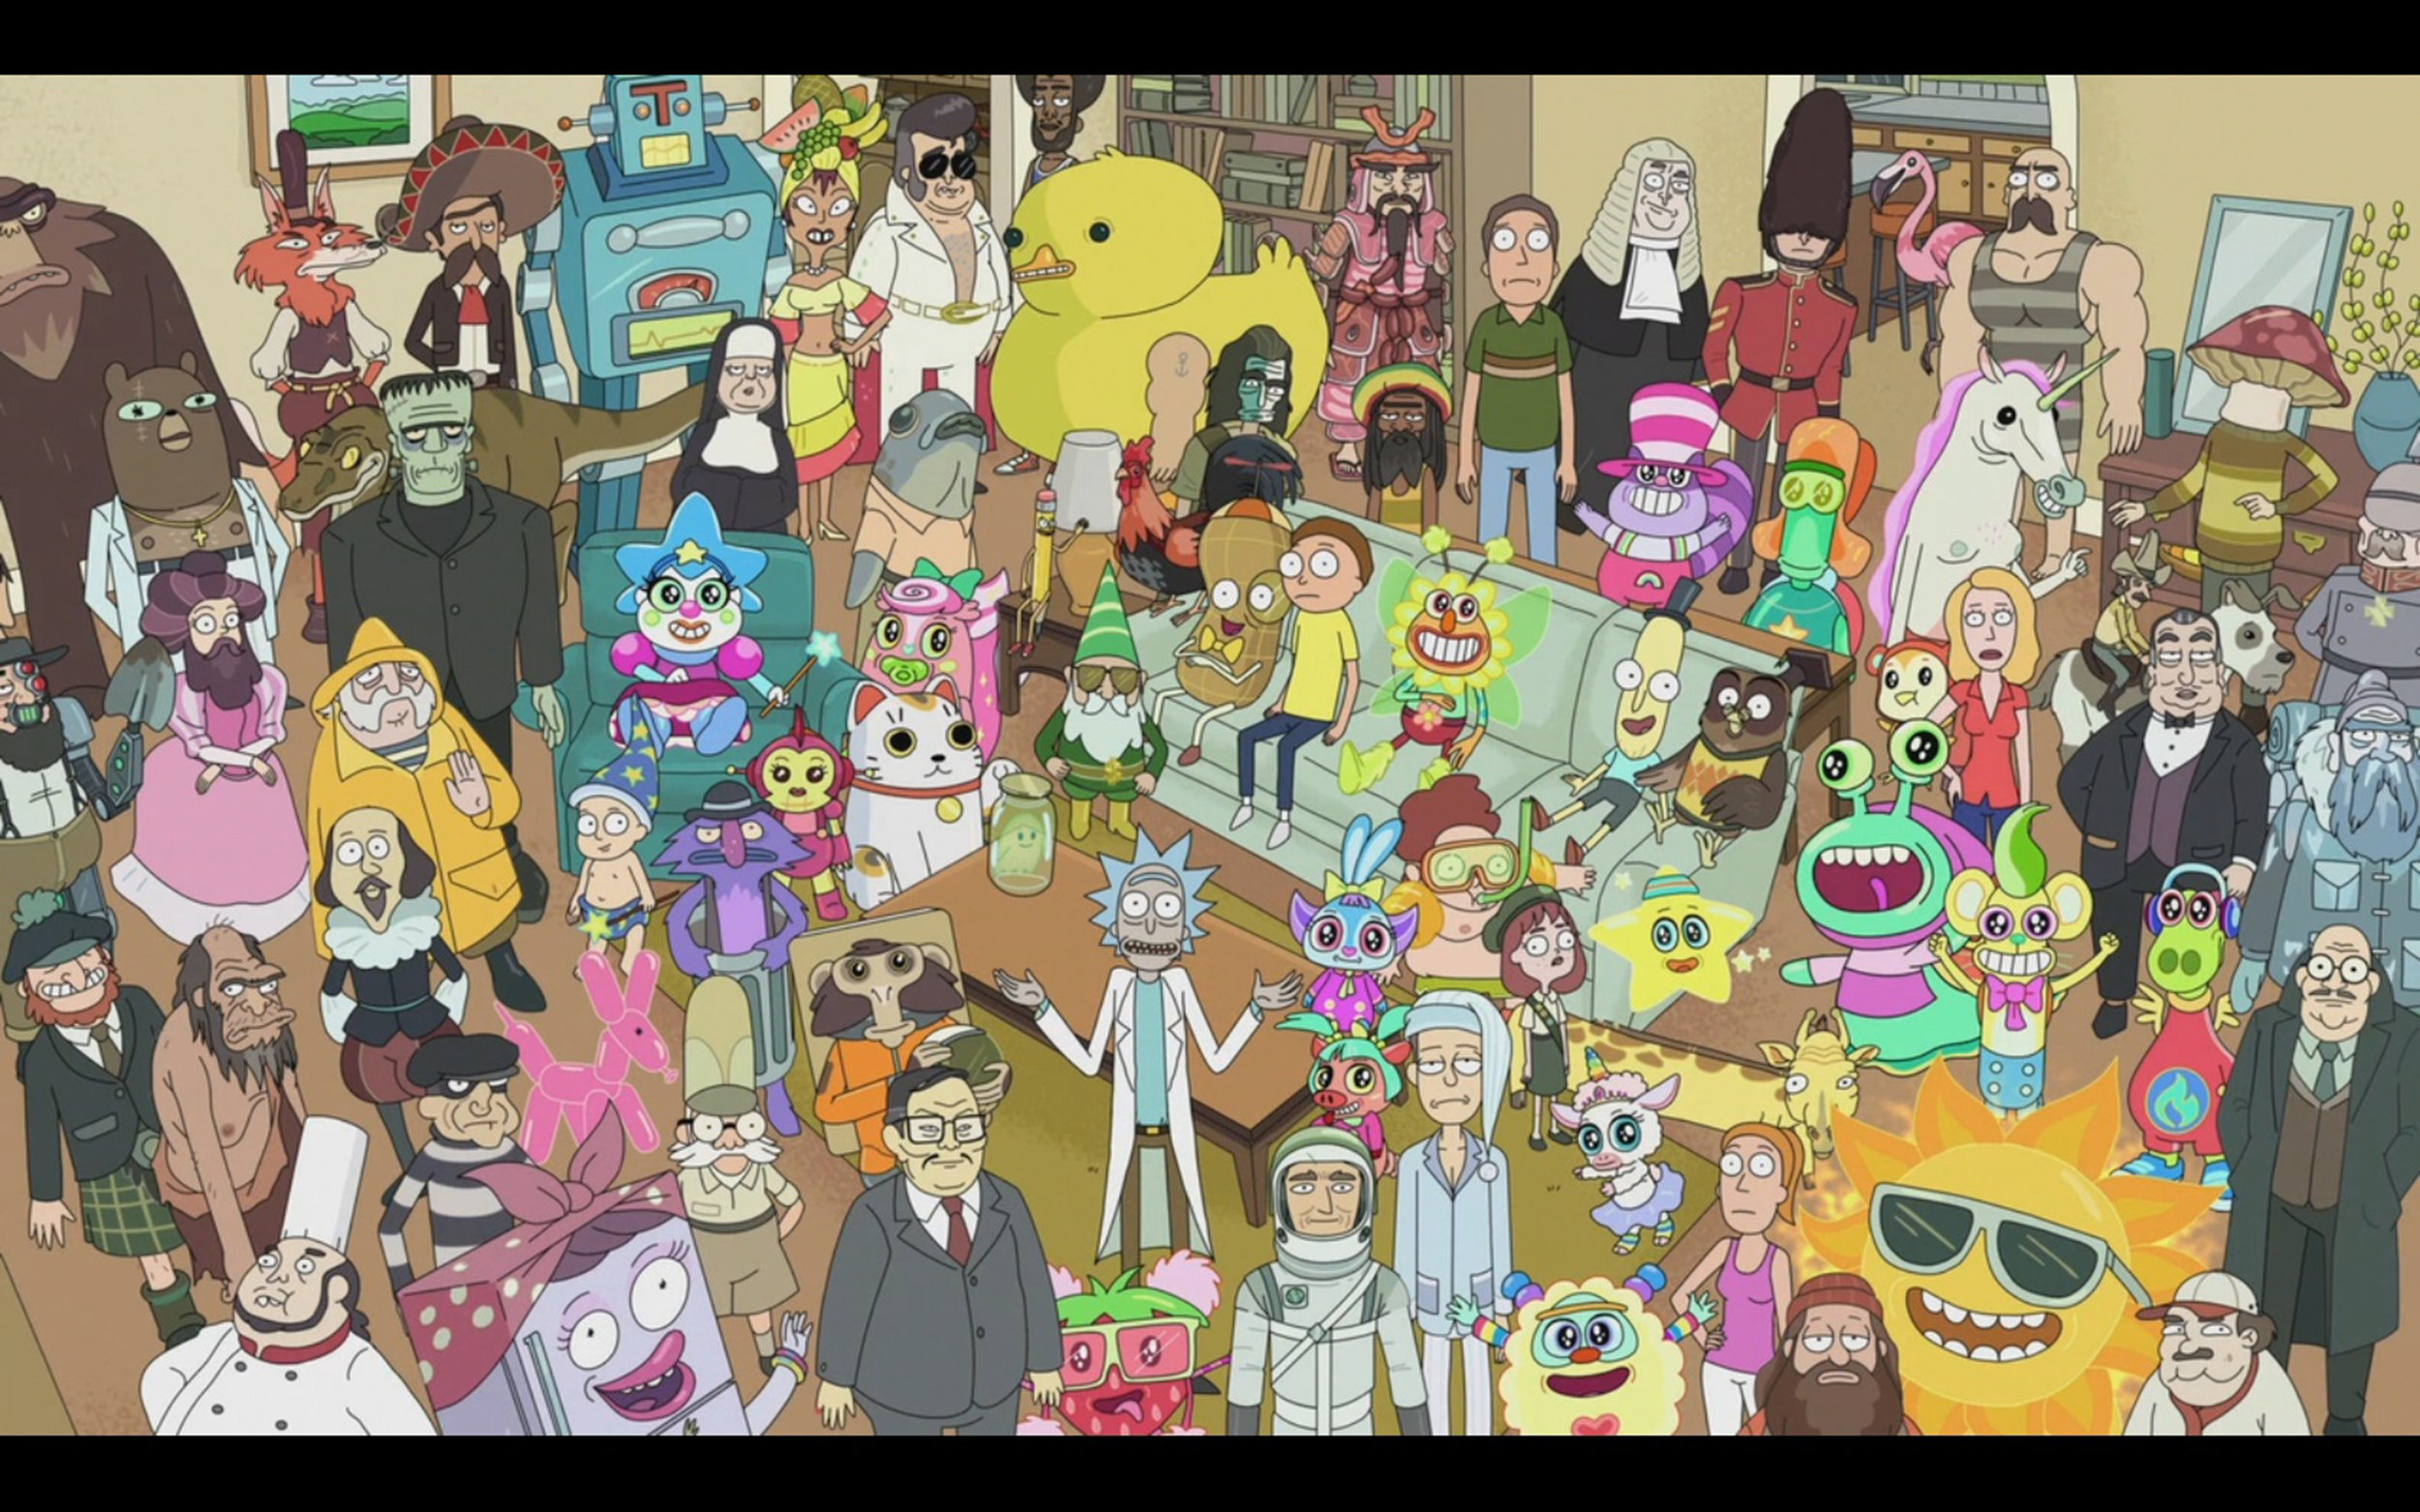 """Adult Swim's """"Rick and Morty"""" aired its season three finale on Sunday Oct. 1. After having the season premiere on April Fools' Day, the entirety of season three lived up to fans' expectations with wacky hijinks from main characters Rick and Morty. Pictured above: a screencap from season two, episode four: """"Total Rickall."""" (Courtesy of Creative Commons)"""